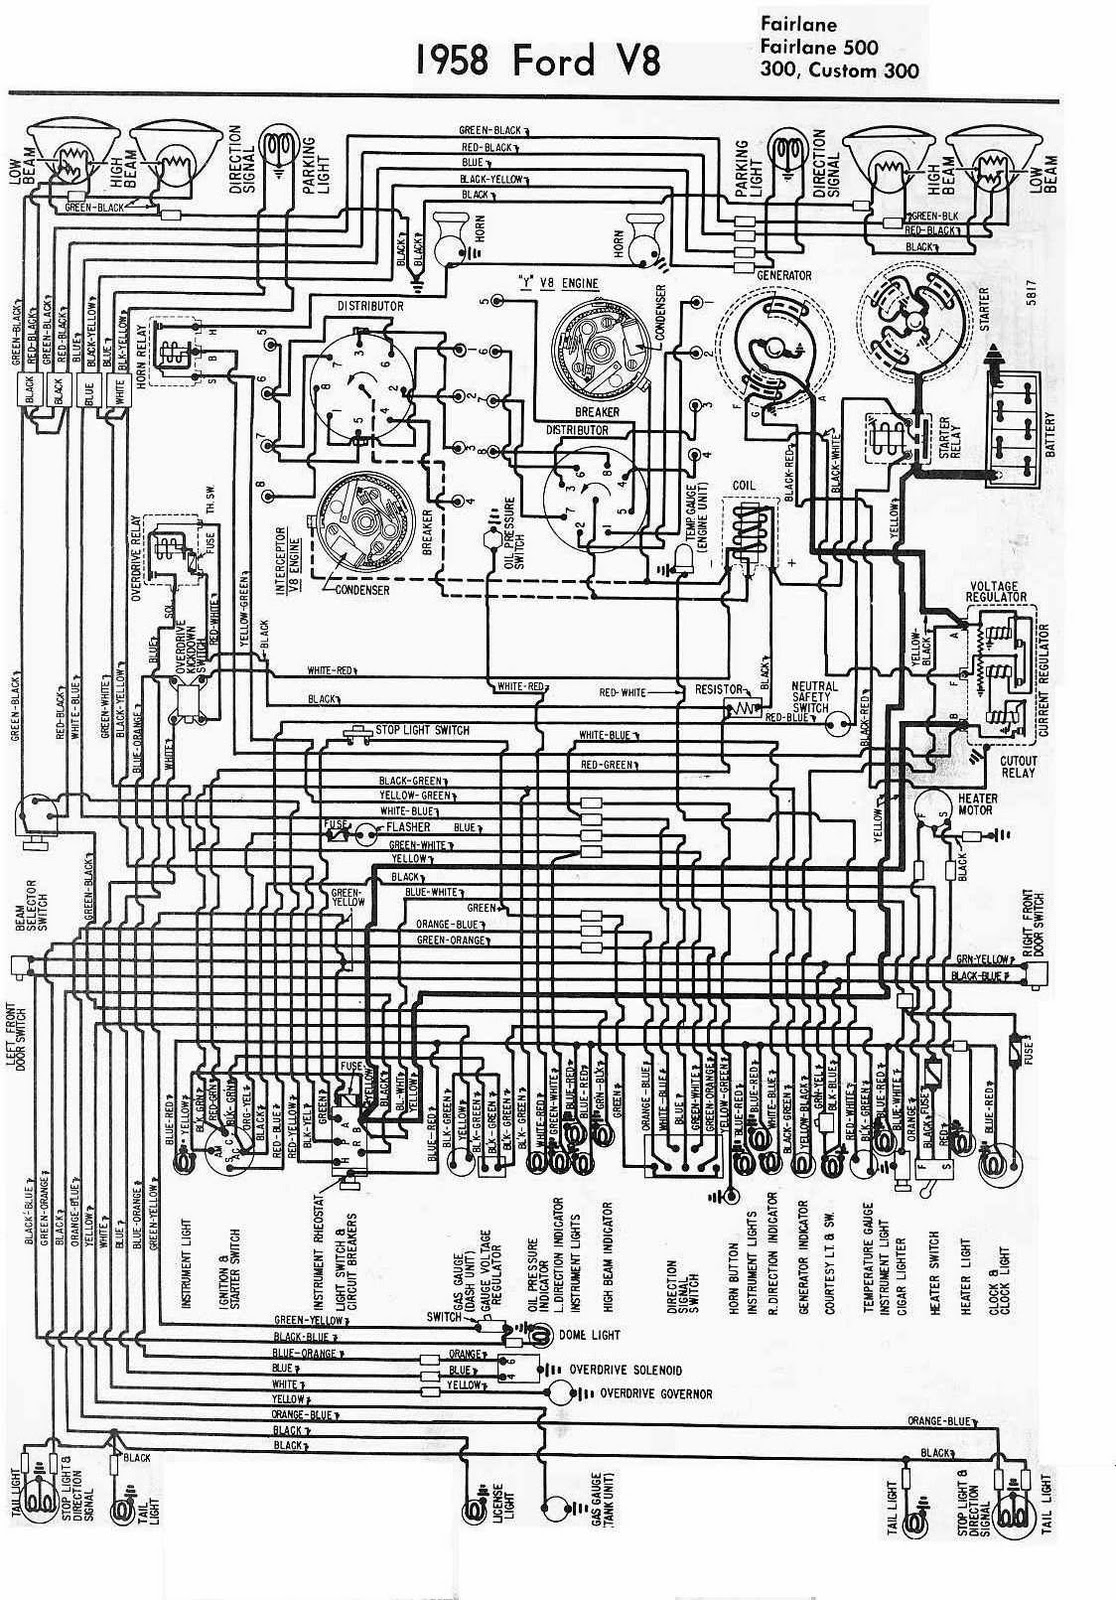 Terrific Telegraph Wiring Diagram Get Free Image About Wiring Diagram Wiring Cloud Vieworaidewilluminateatxorg